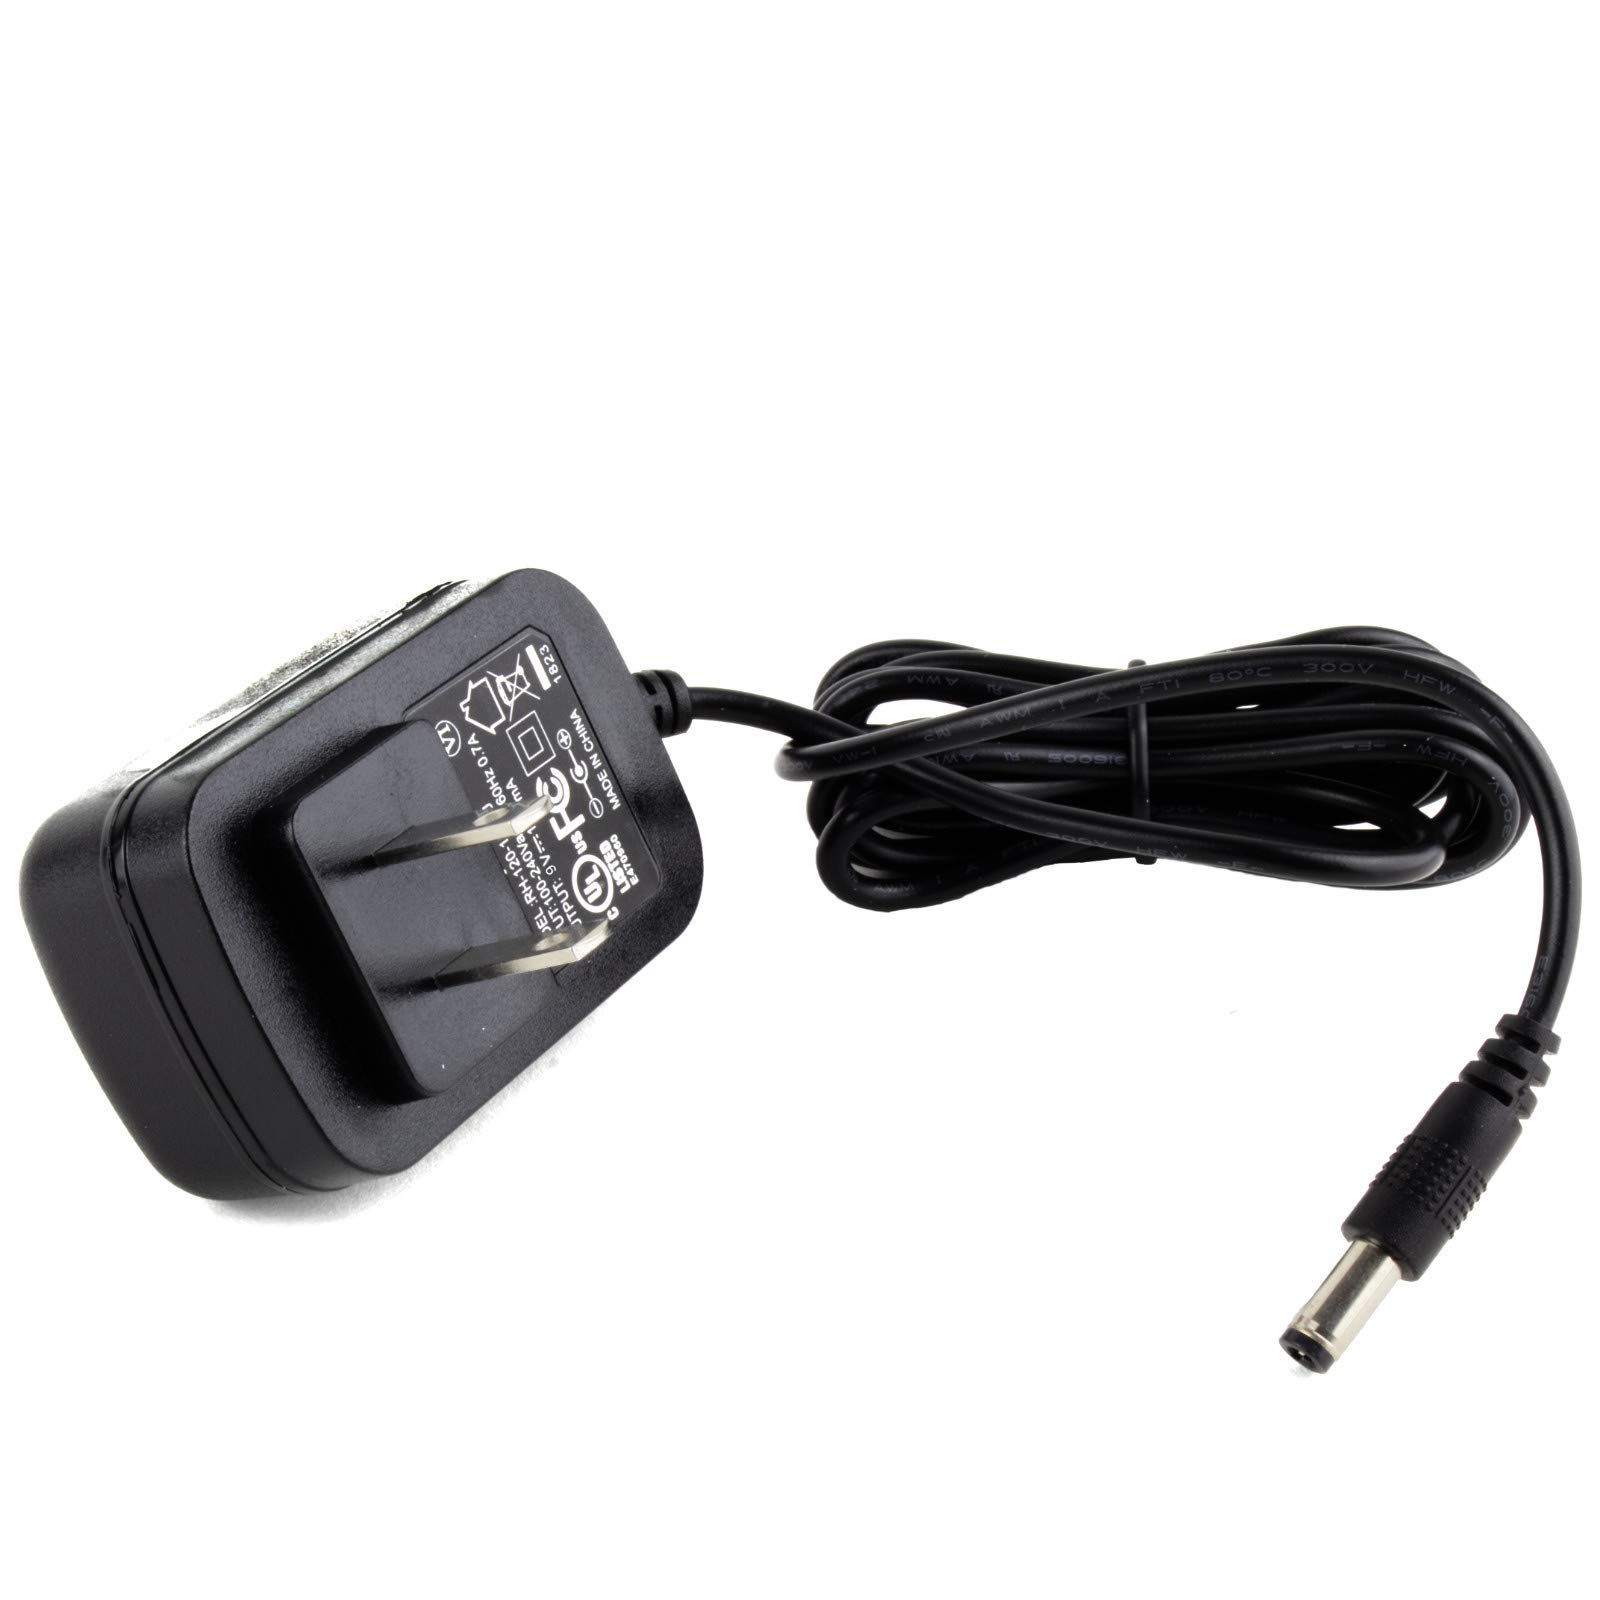 MyVolts 9V Power Supply Adaptor Compatible with Brother PT-2700 Label Printer - US Plug by MyVolts (Image #1)